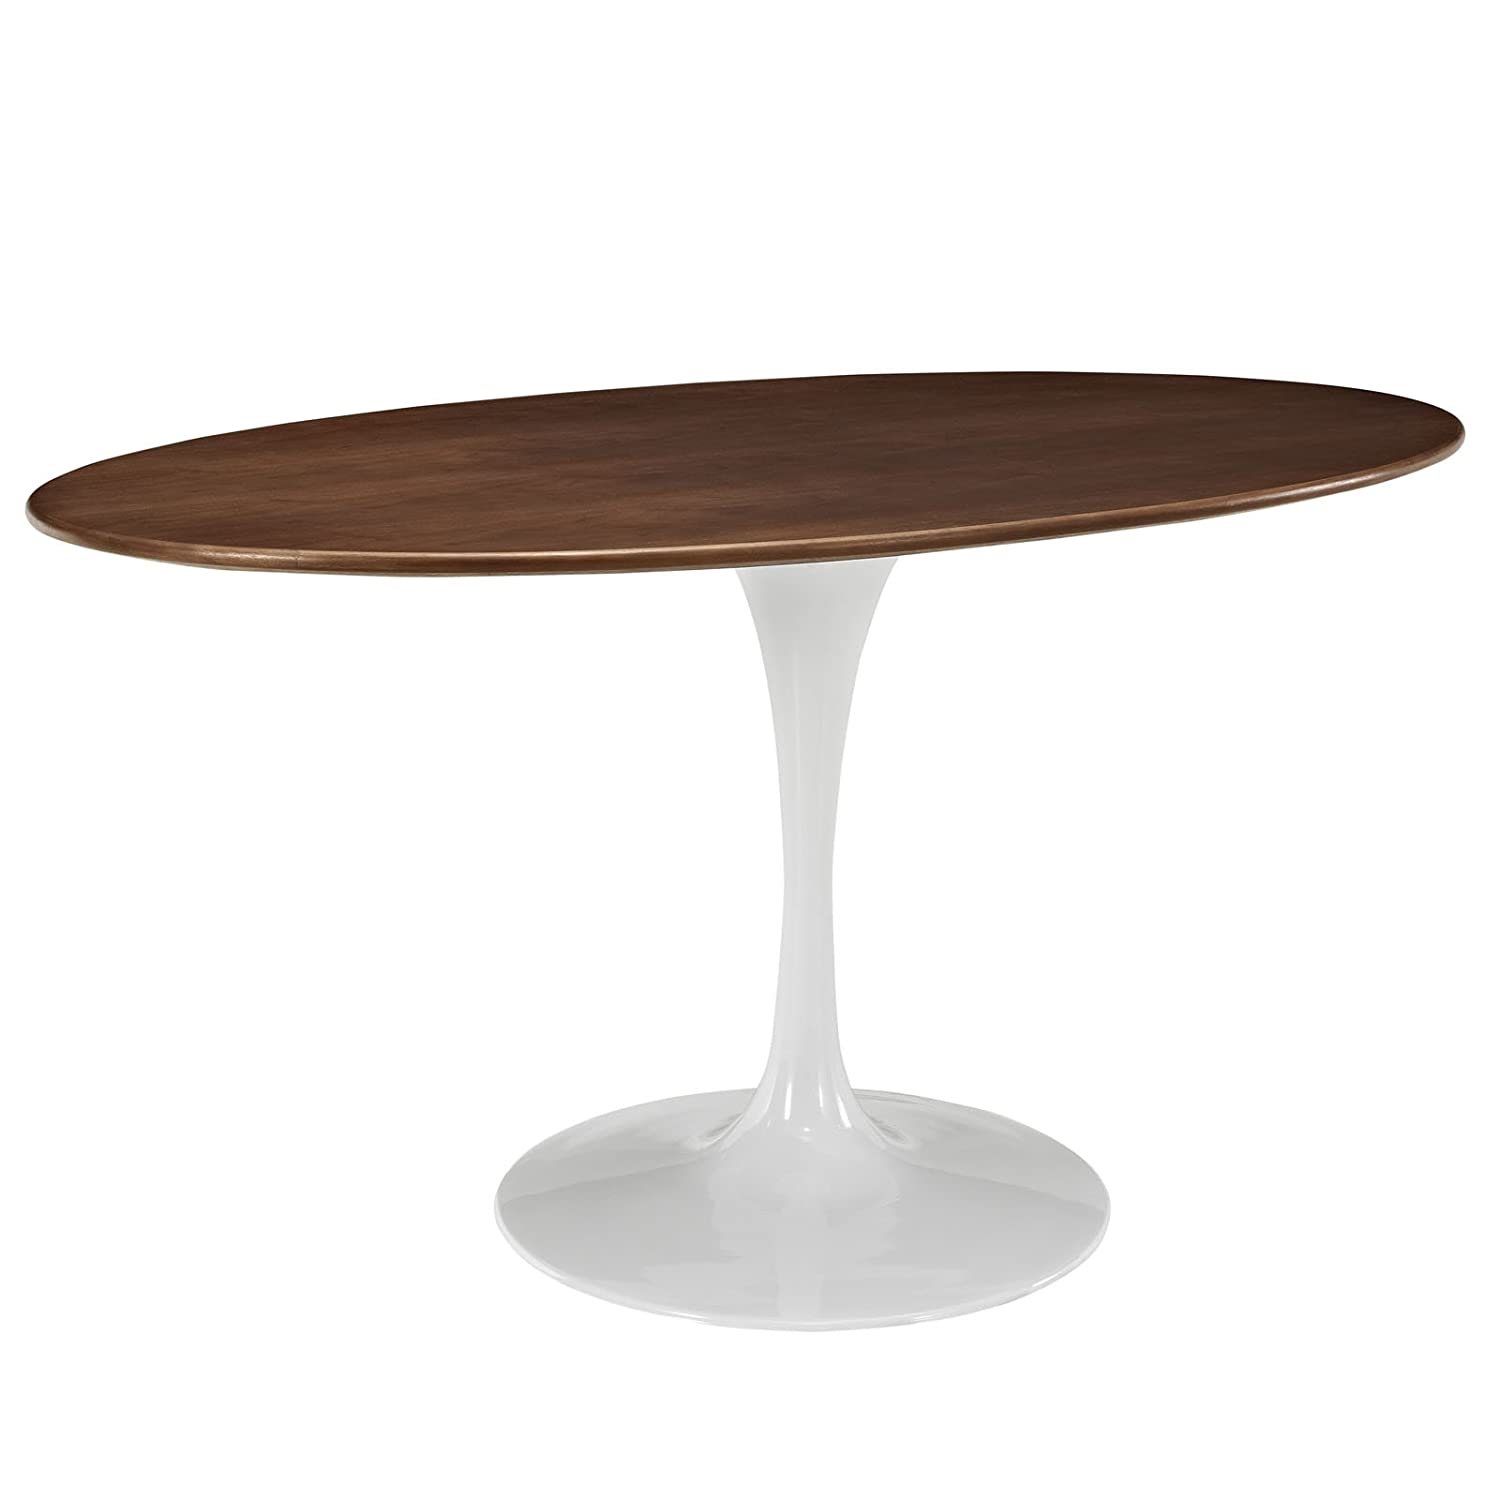 wave table urban bc condo furniture pedestal halo dining small products vancouver van oval